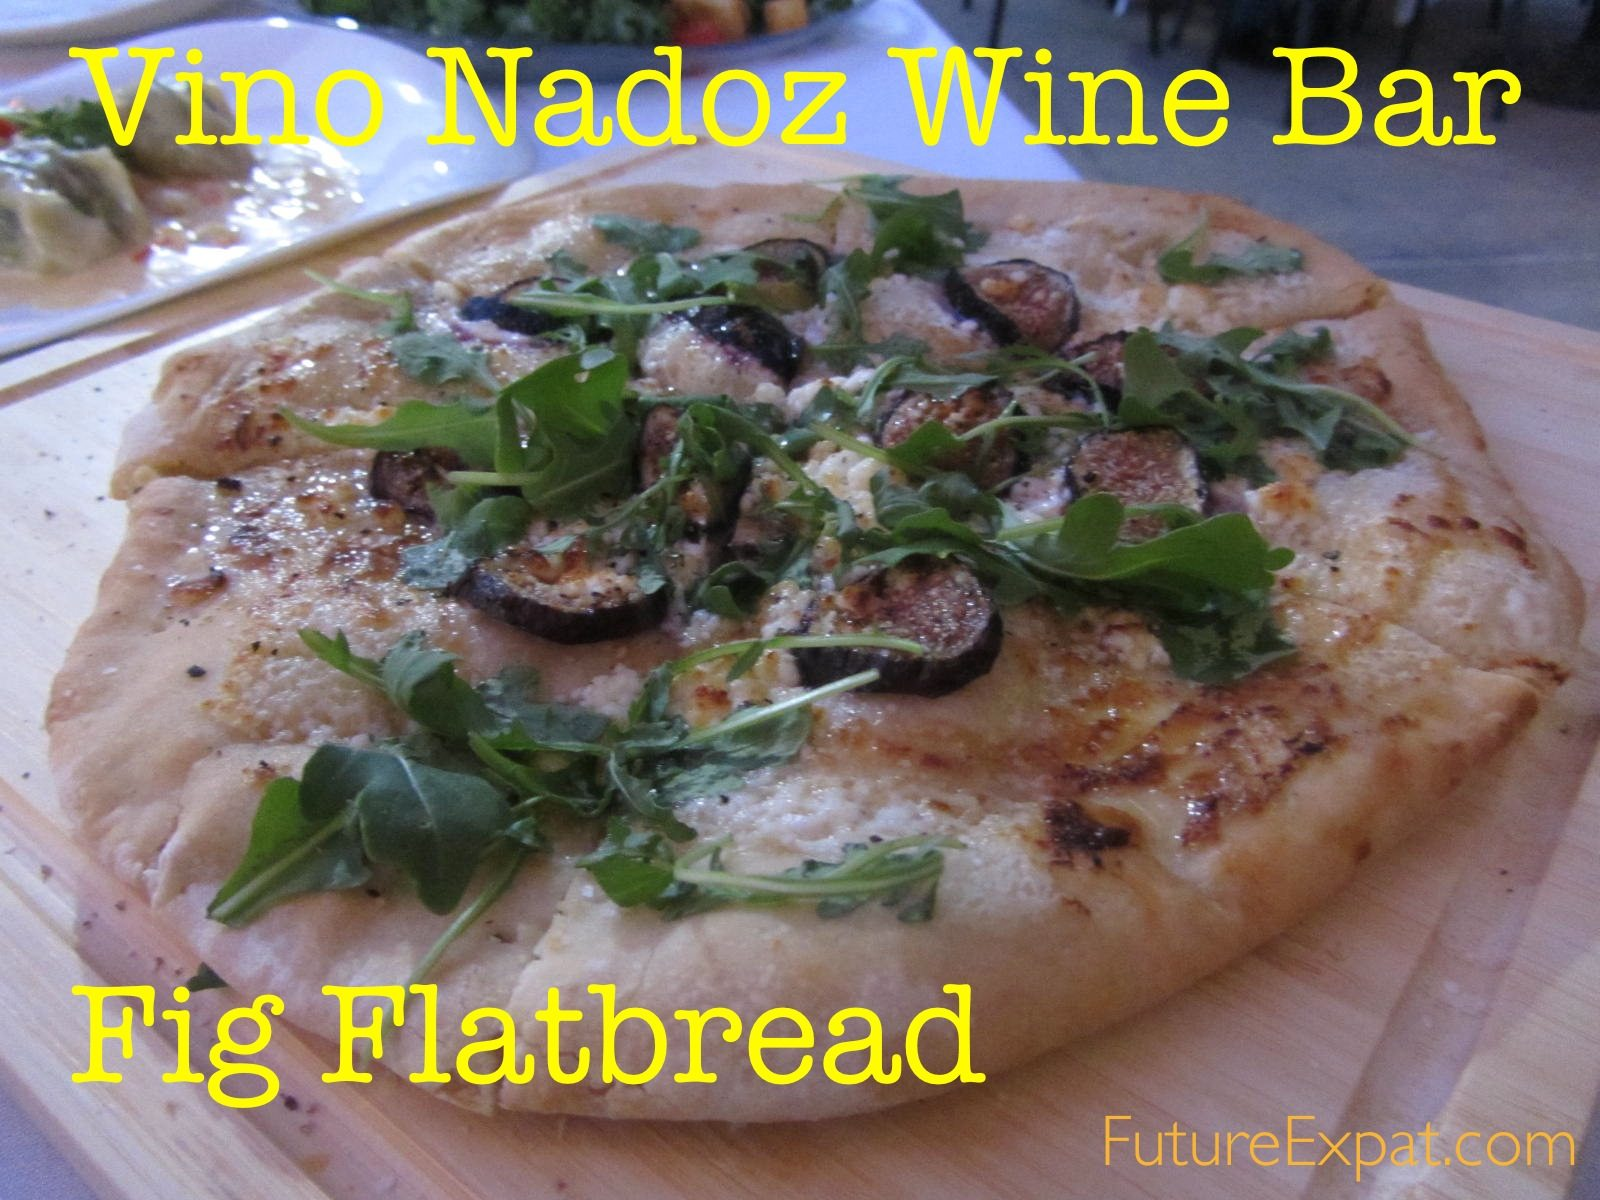 St. Louis Restaurant Review: Vino Nadoz Wine Bar